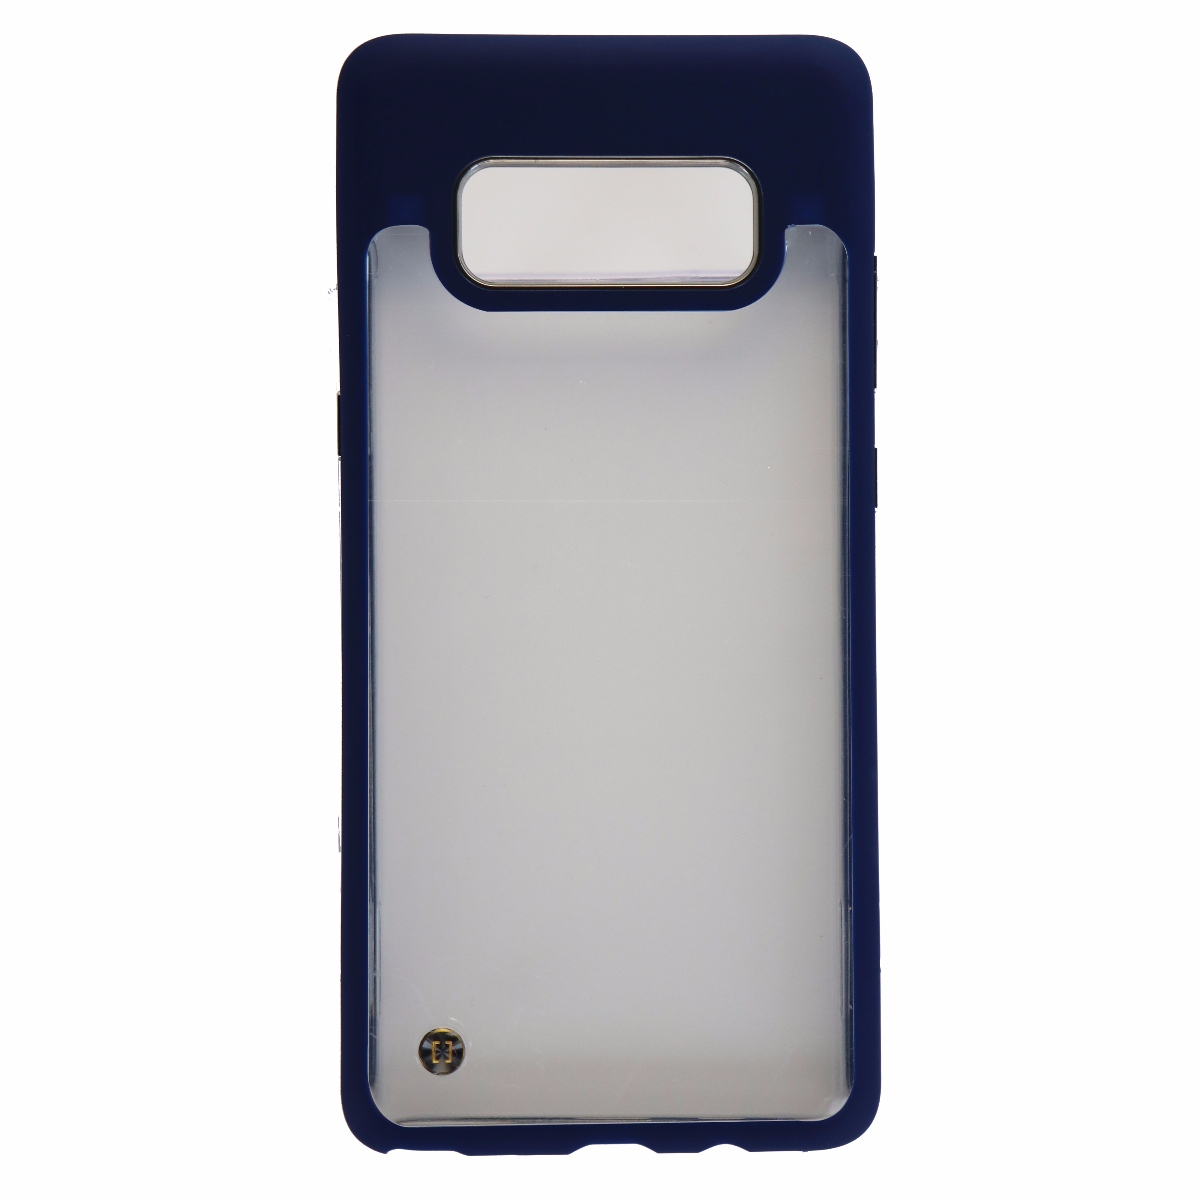 Granite Mono Series Hybrid Case Cover Samsung Galaxy Note 8 - Clear / Navy Blue